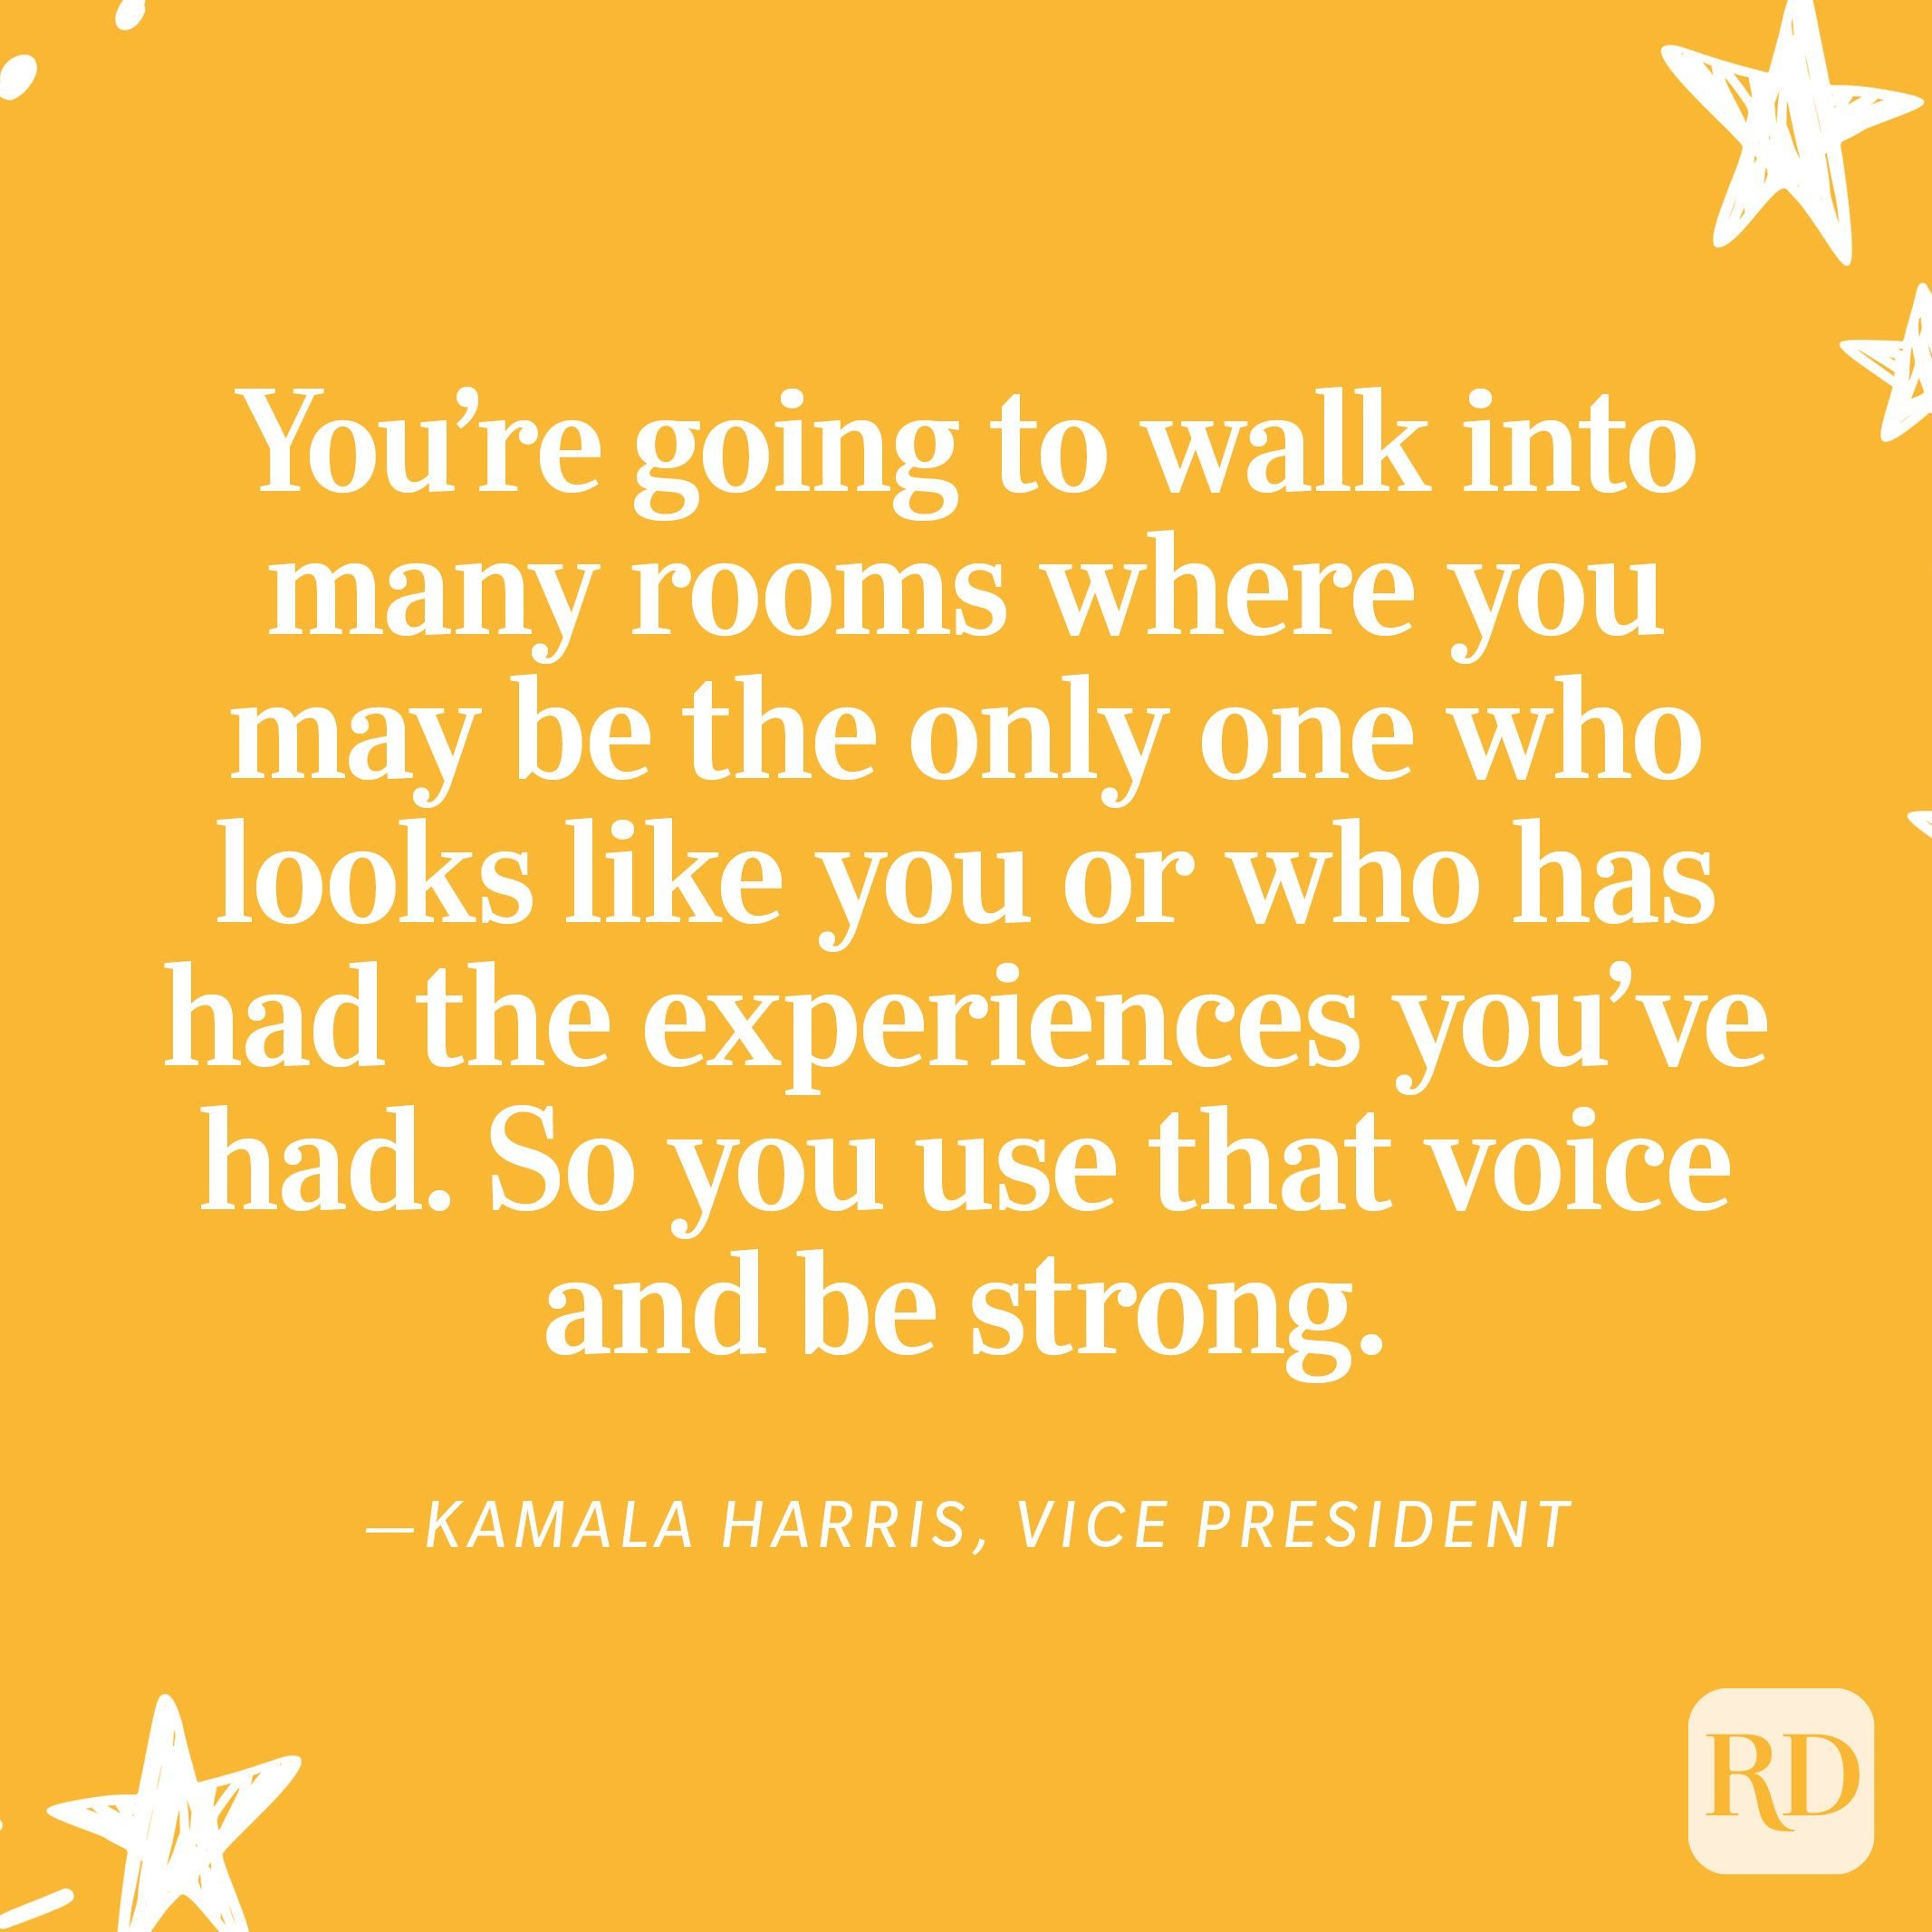 """""""What I want young women and girls to know is: You are powerful and your voice matters. You're going to walk into many rooms where you may be the only one who looks like you or who has had the experiences you've had. So you use that voice and be strong."""" —Kamala Harris, Vice President"""